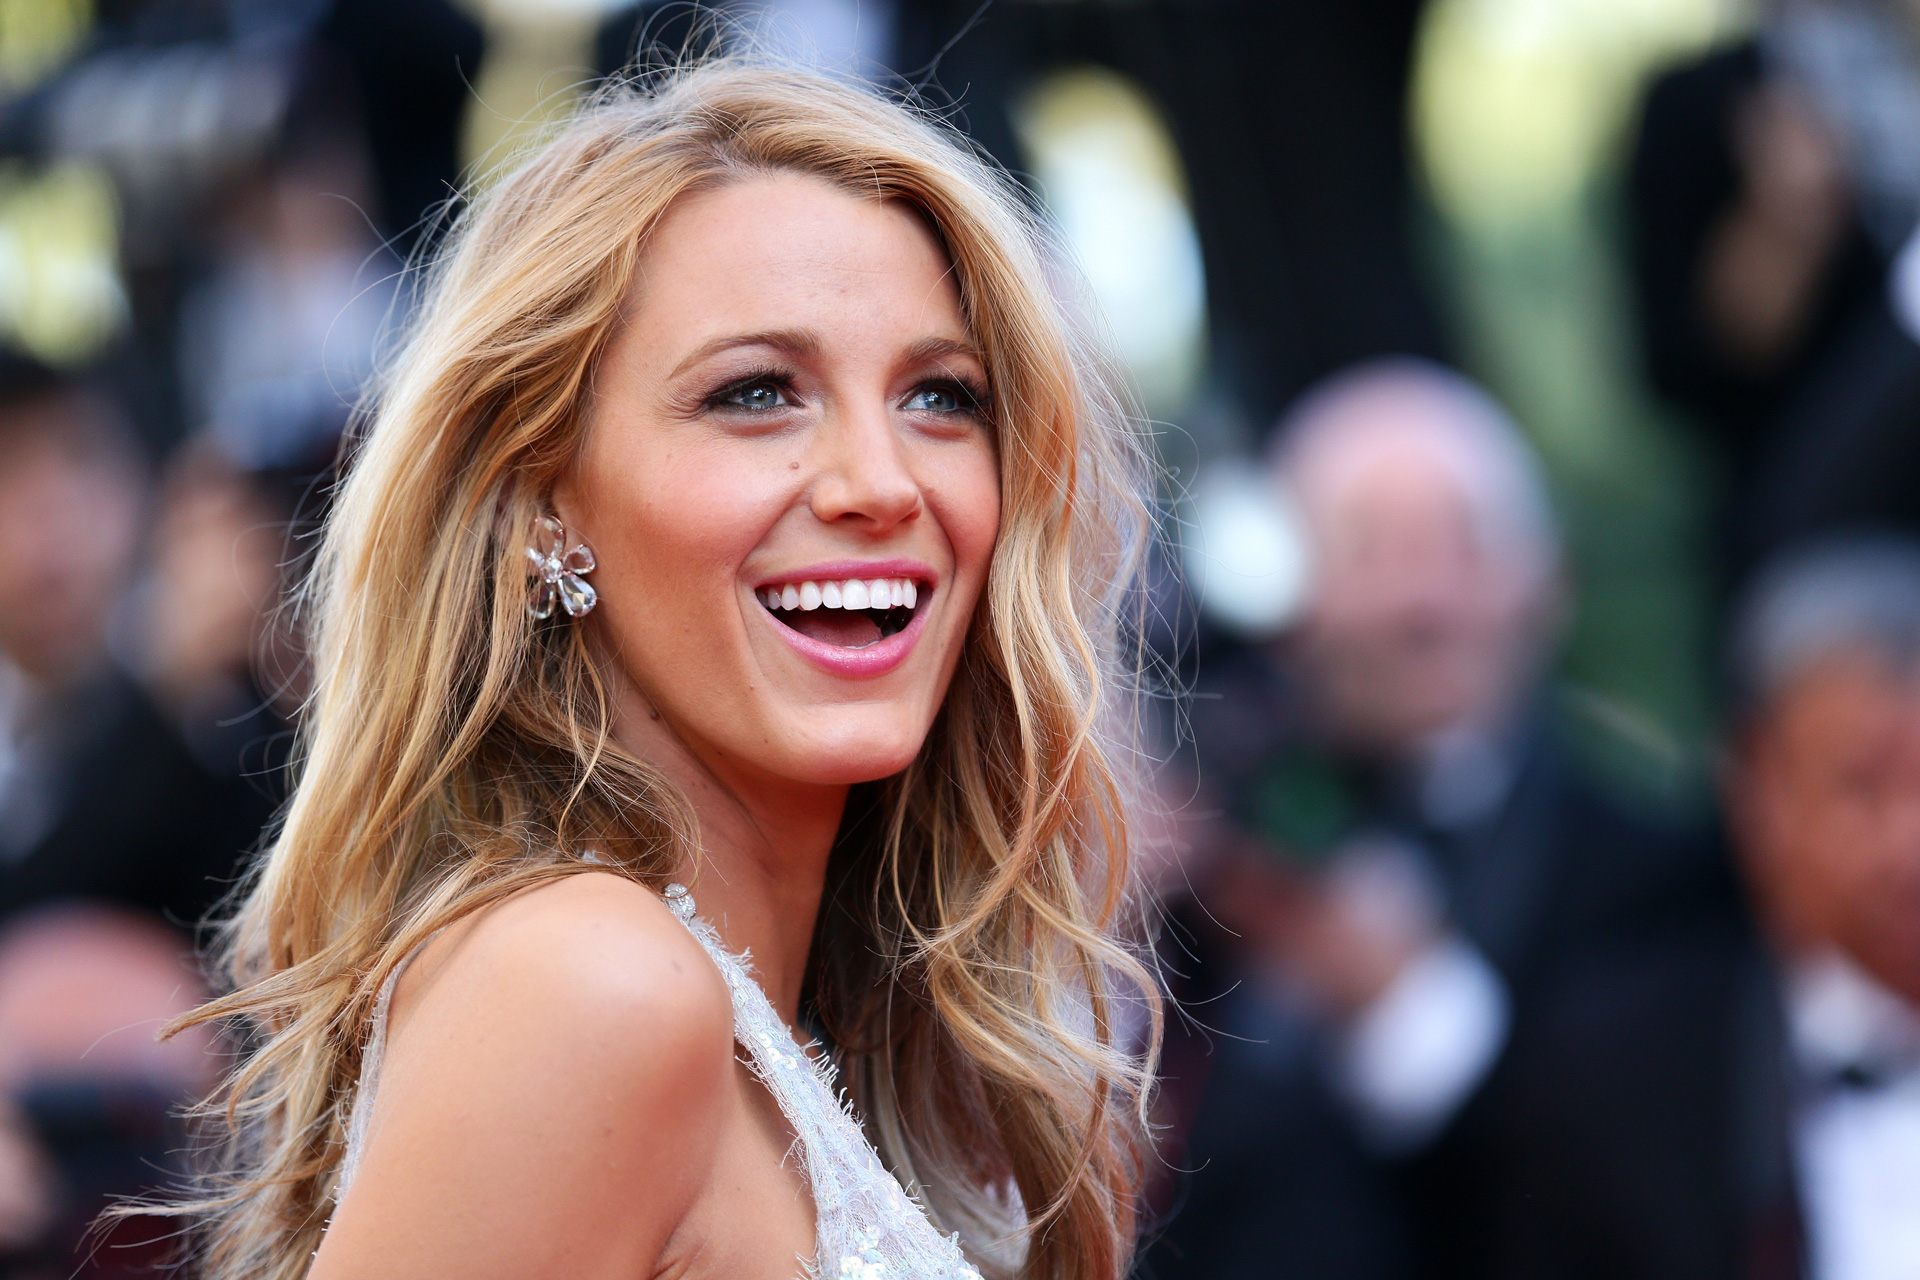 Blake Lively at Cannes Film Festival in 2014 wearing Chanel